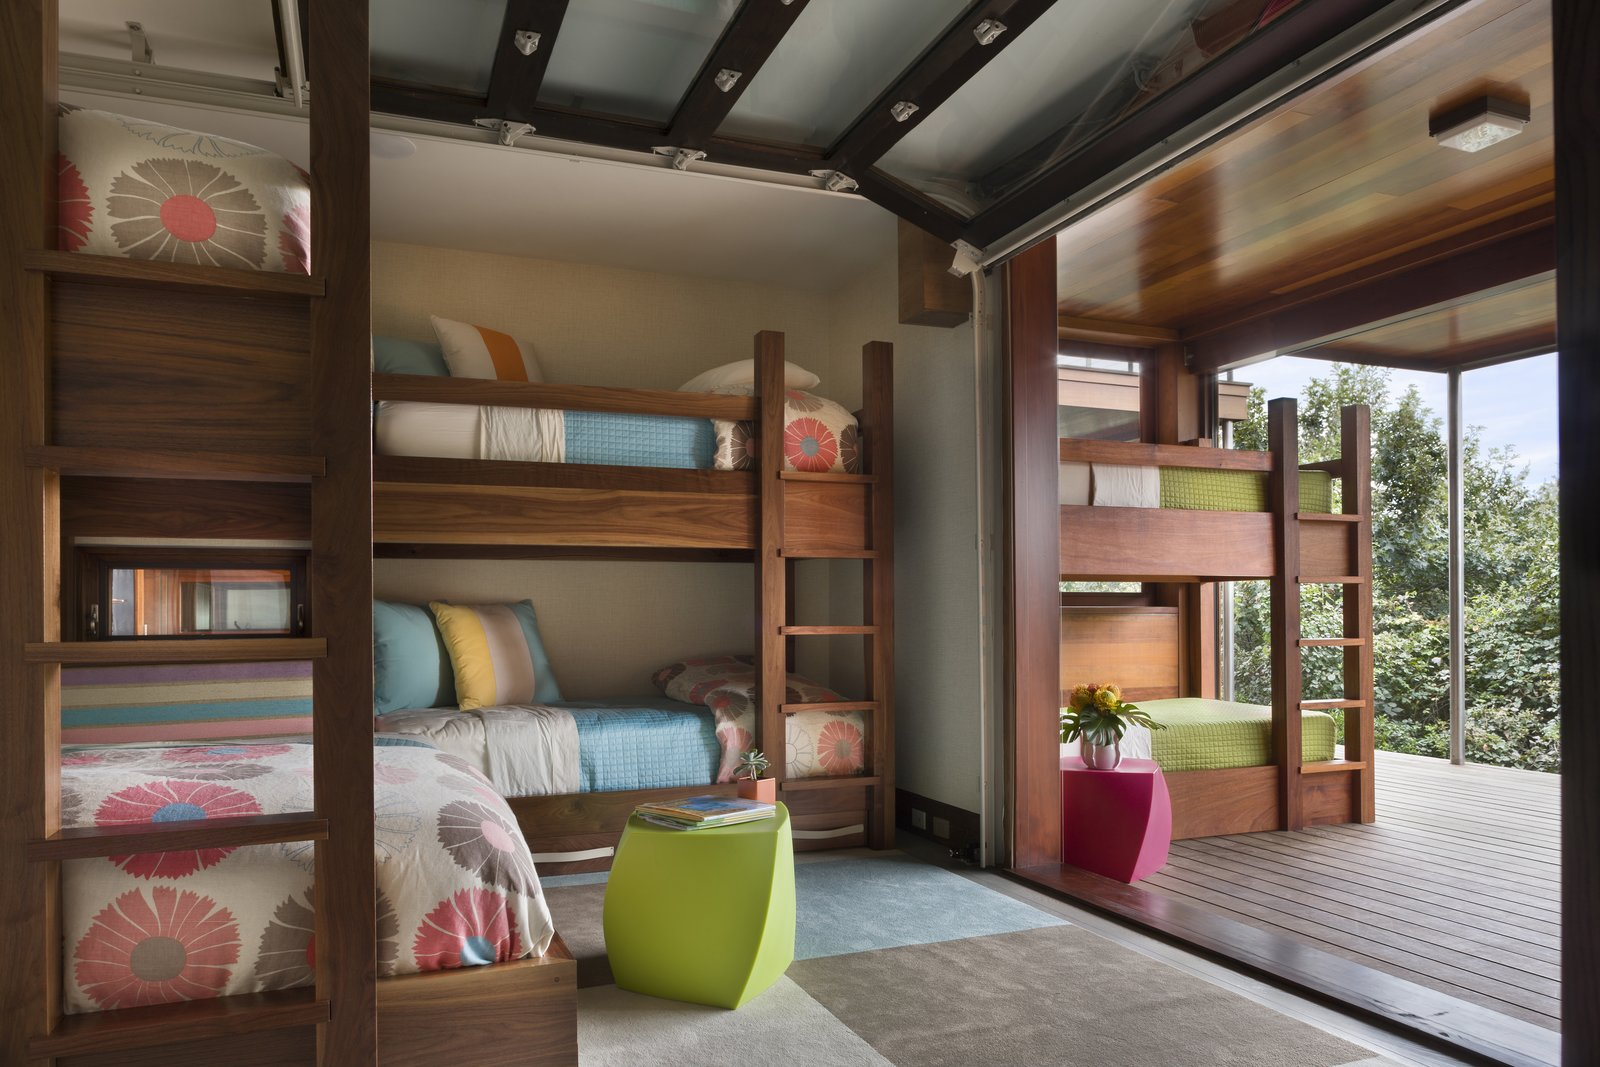 Garage-style doors open and connect the children's rooms to the outdoors.  The Cape